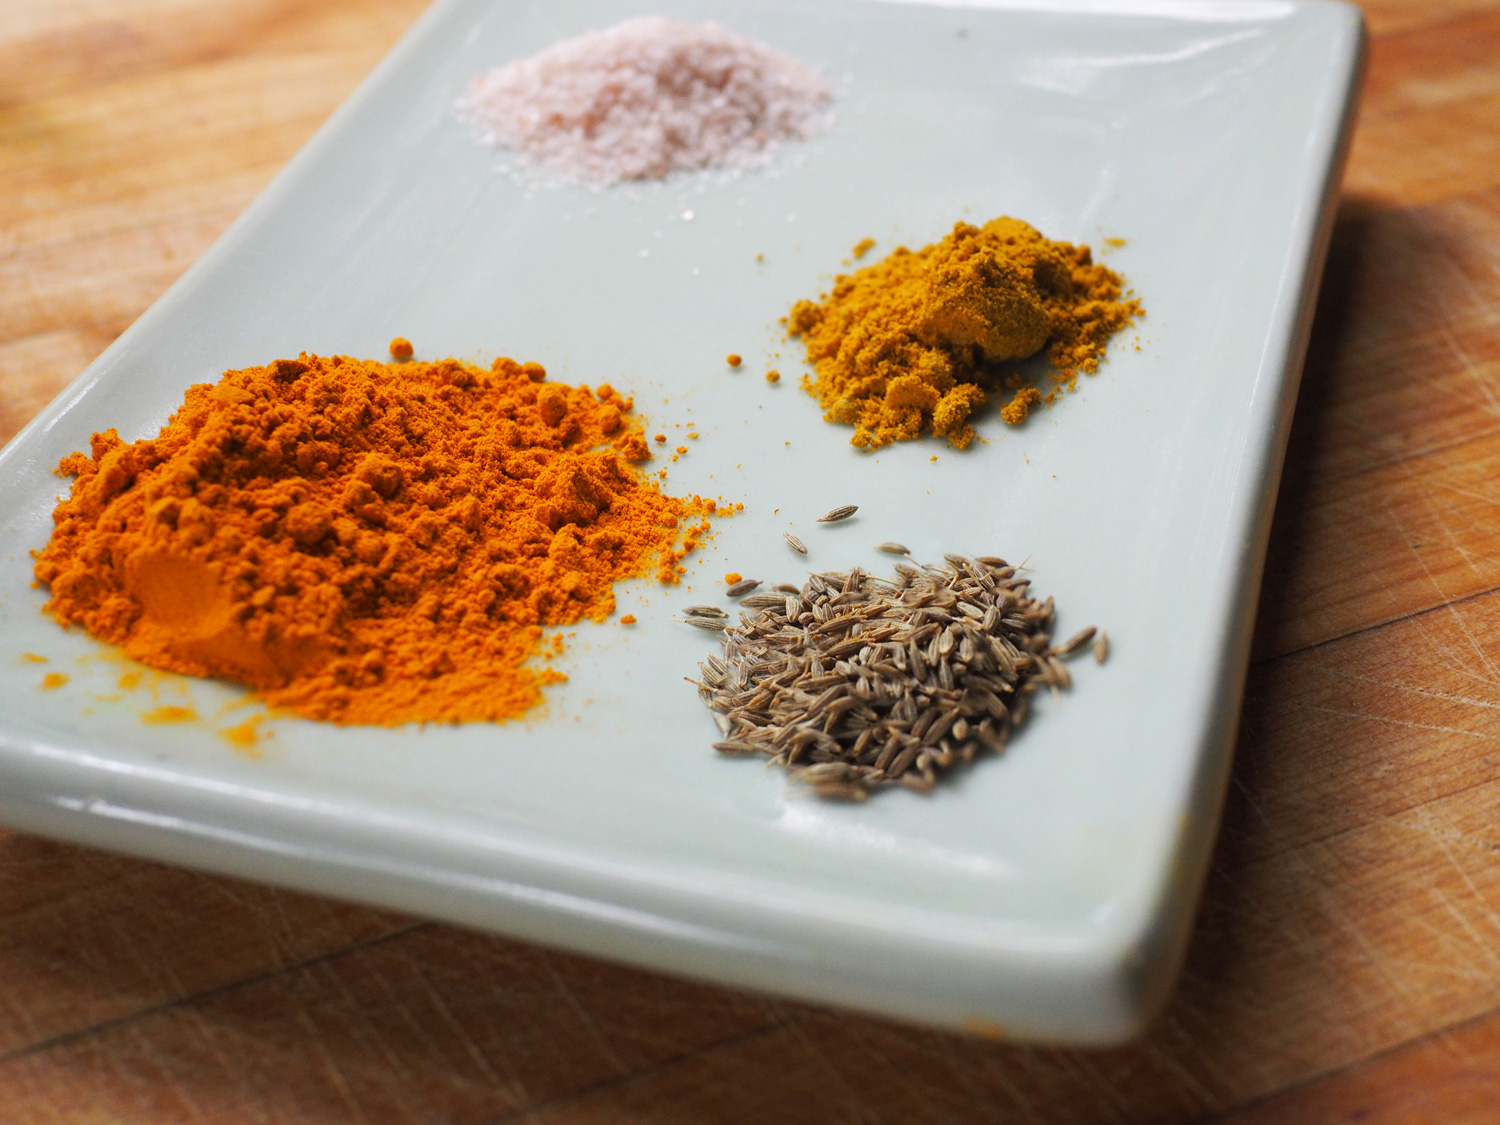 The spice of life. Turmeric, salt, curry powder, cumin seeds.